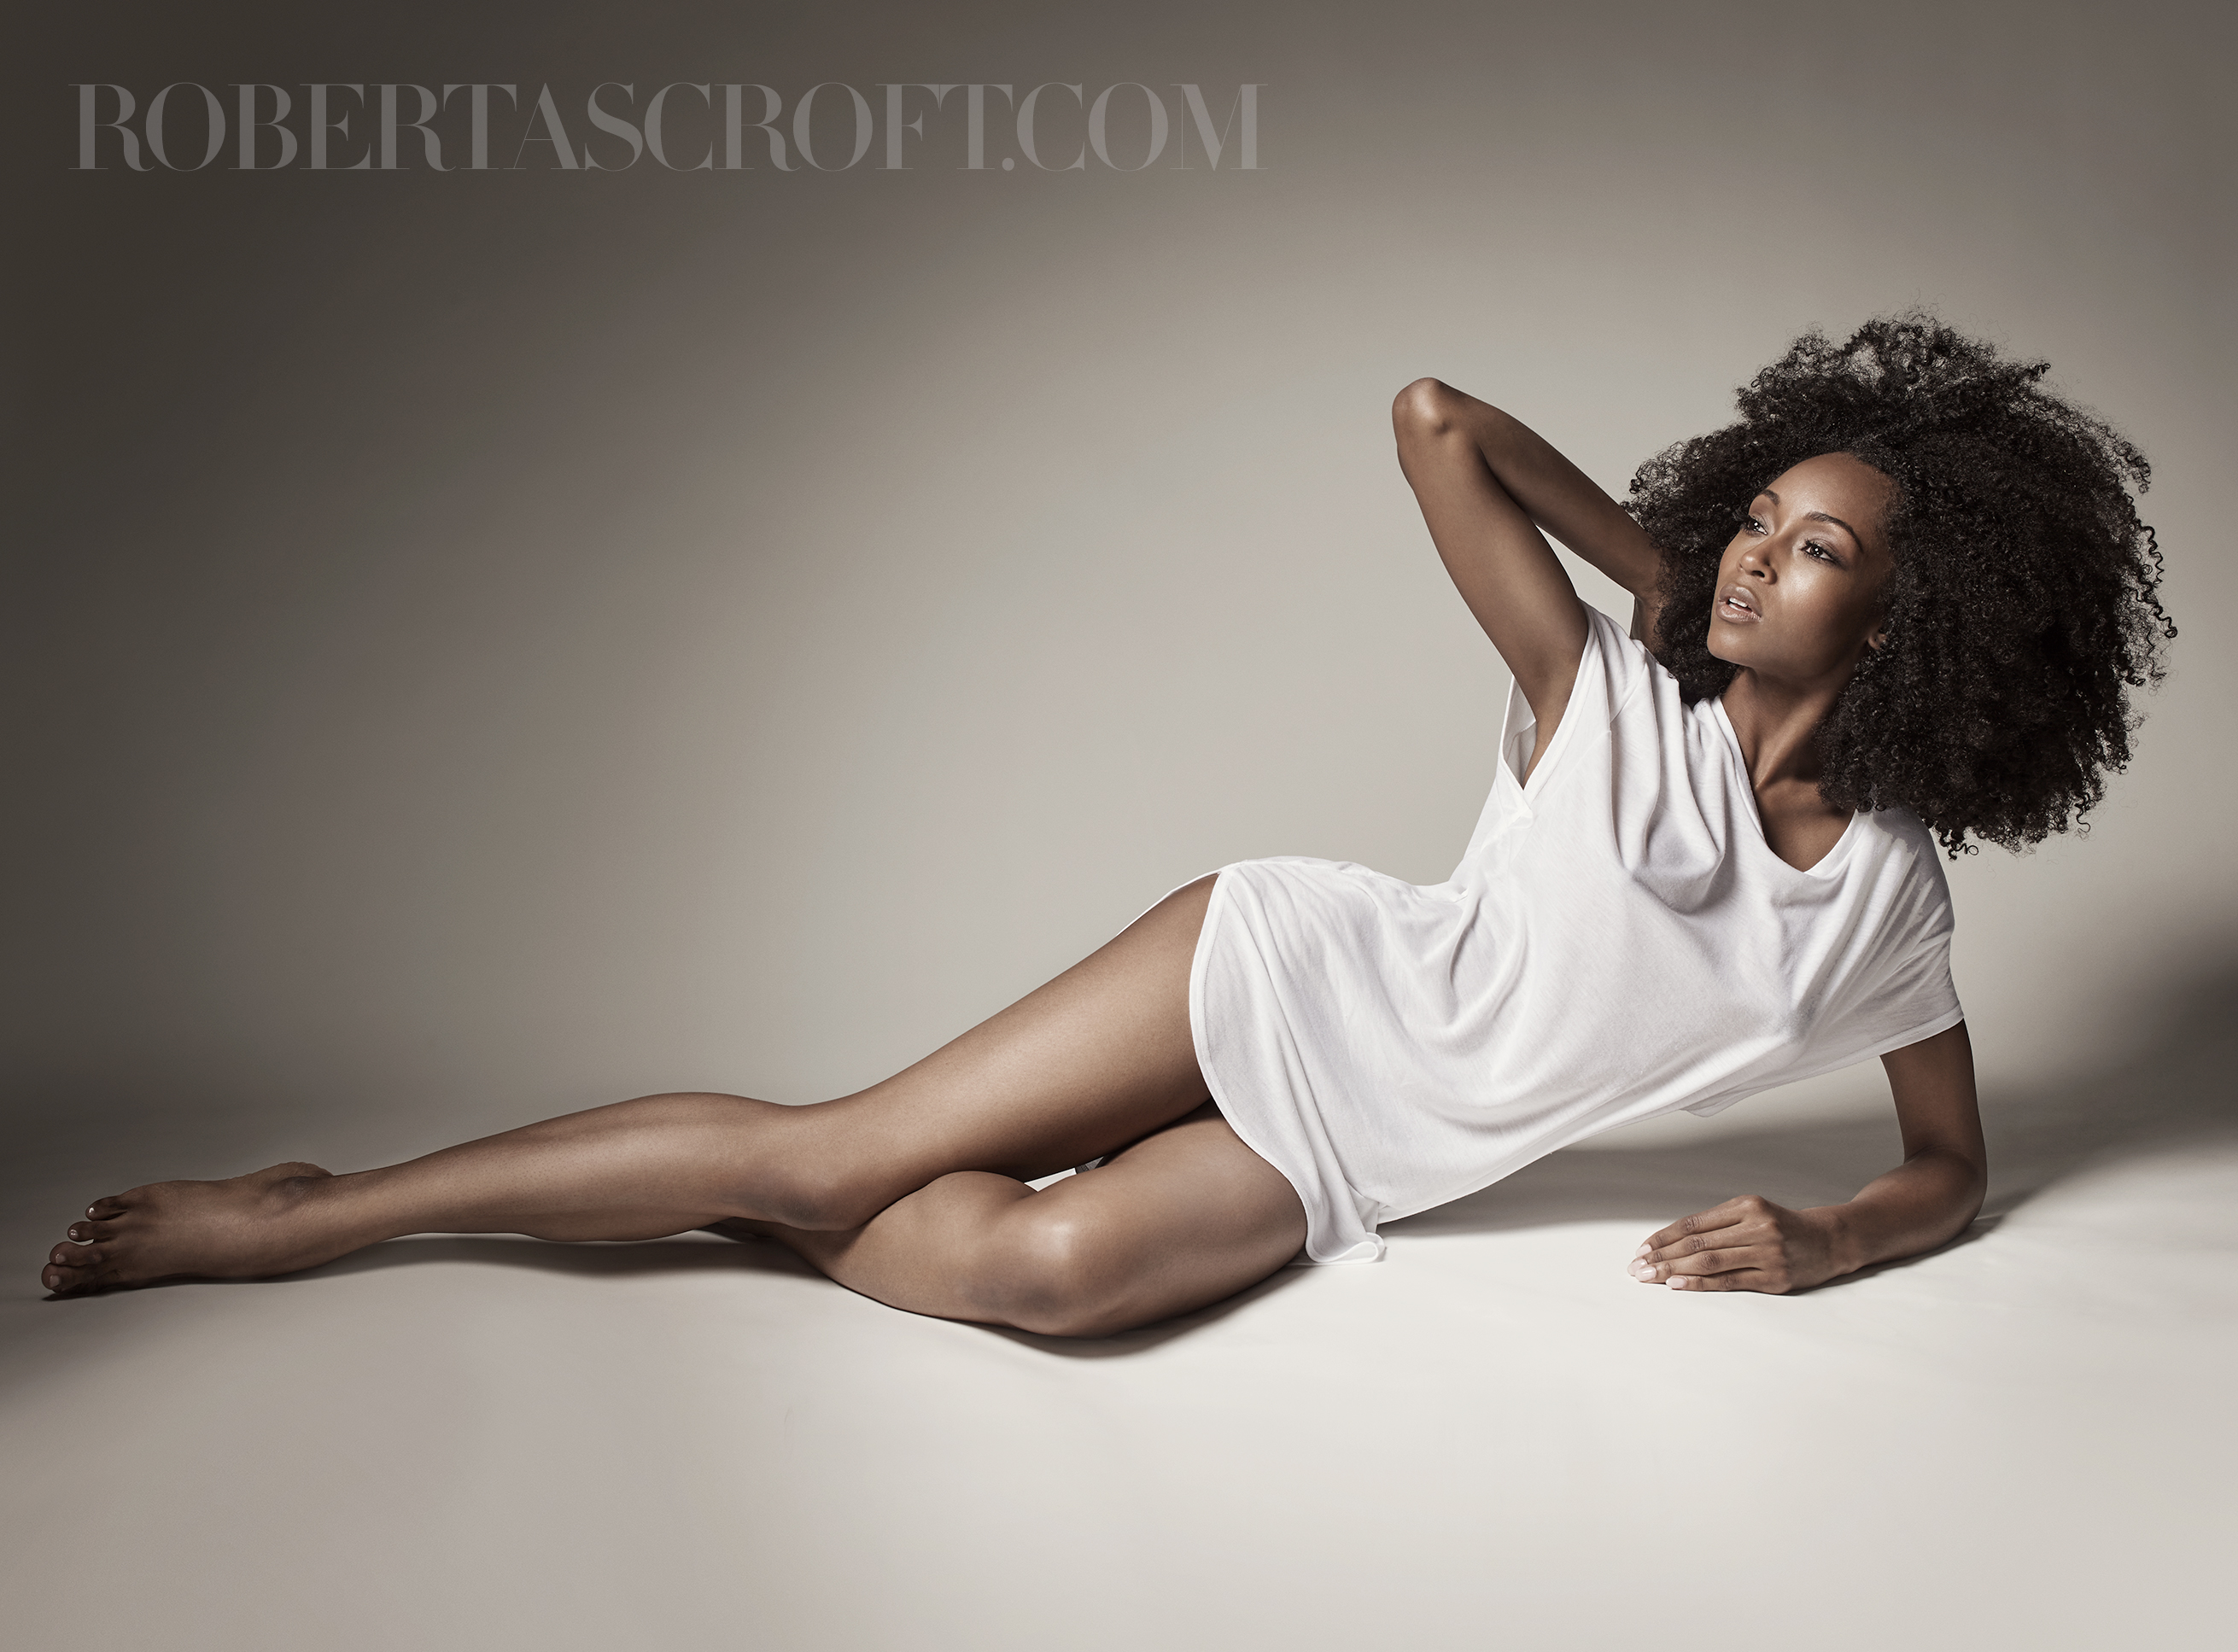 YAYA-DACOSTA-by-Robert-Ascroft-2